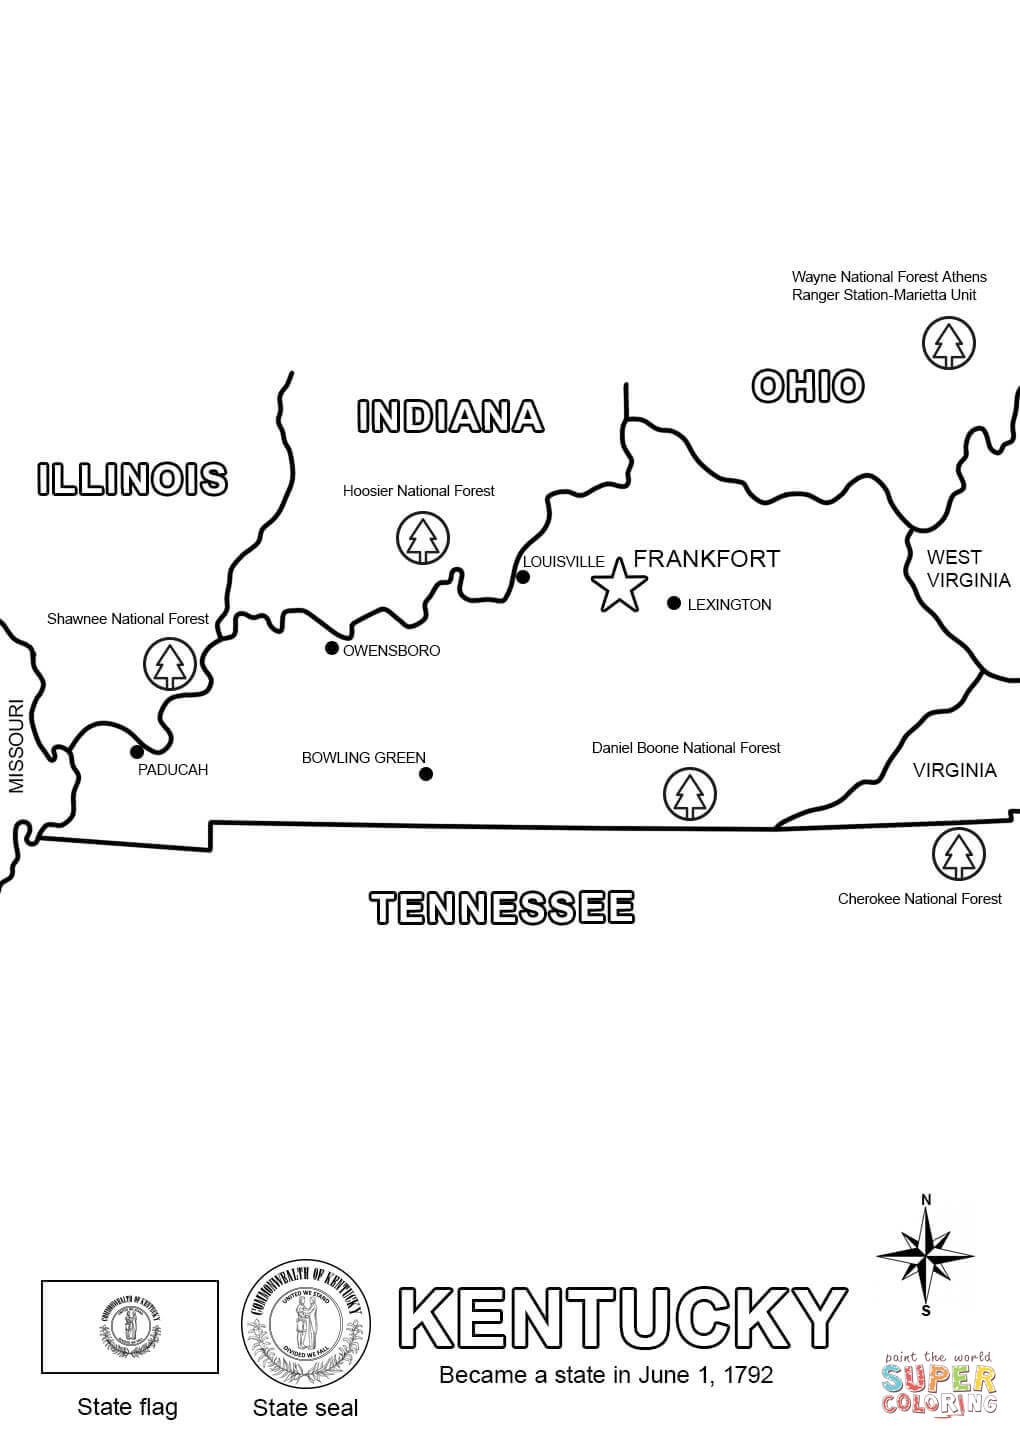 kentucky coloring sheets the best free state drawing images download from 1630 kentucky sheets coloring